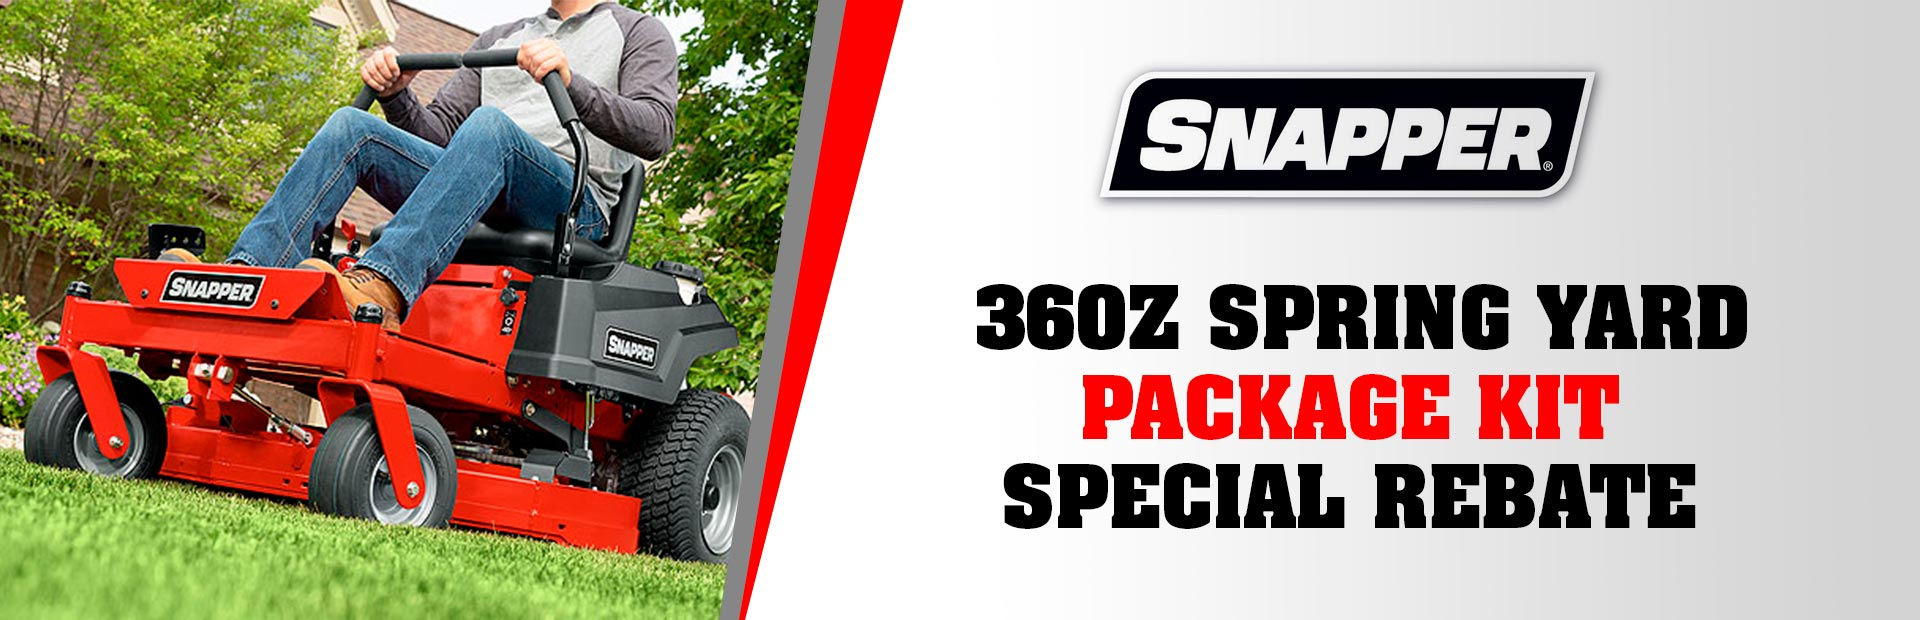 Snapper: 360Z SPRING YARD PACKAGE KIT SPECIAL REBATE